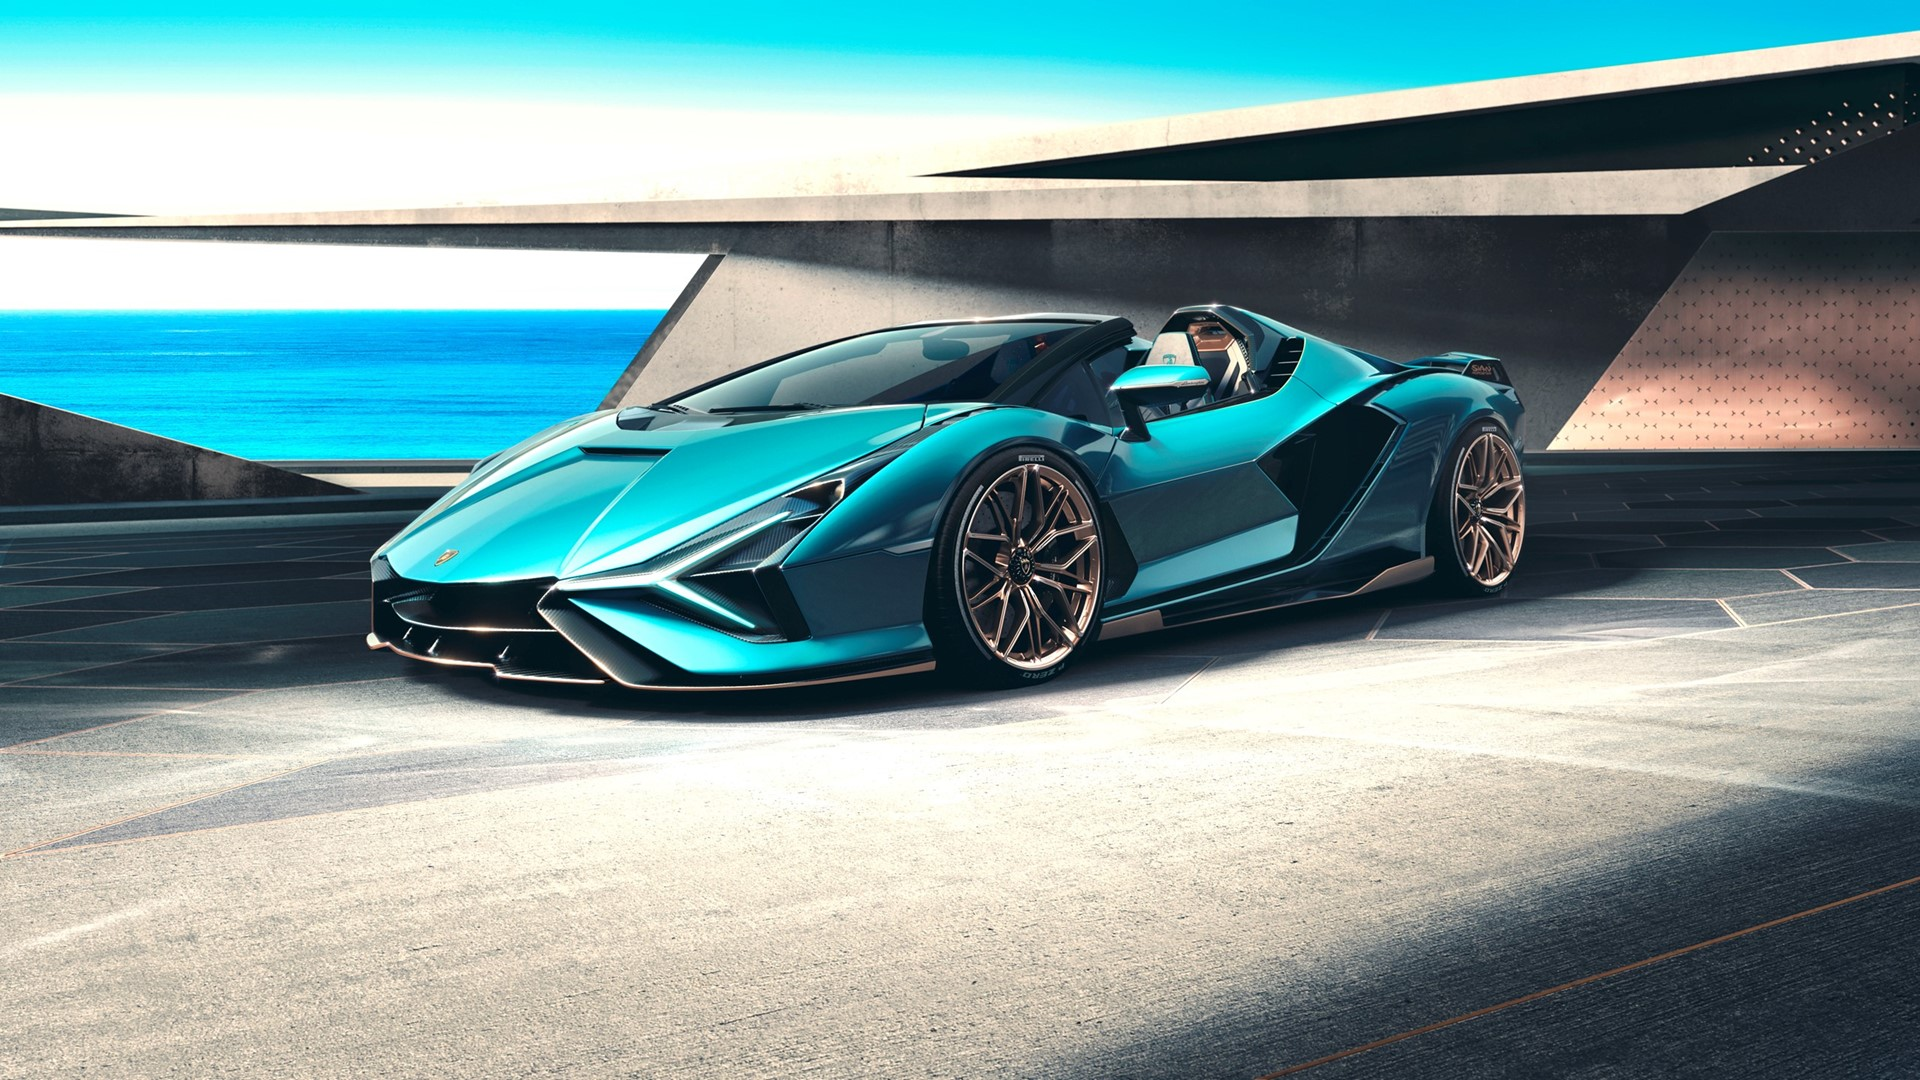 The Lamborghini Sián Roadster: Experience future technology under open skies - Image 8